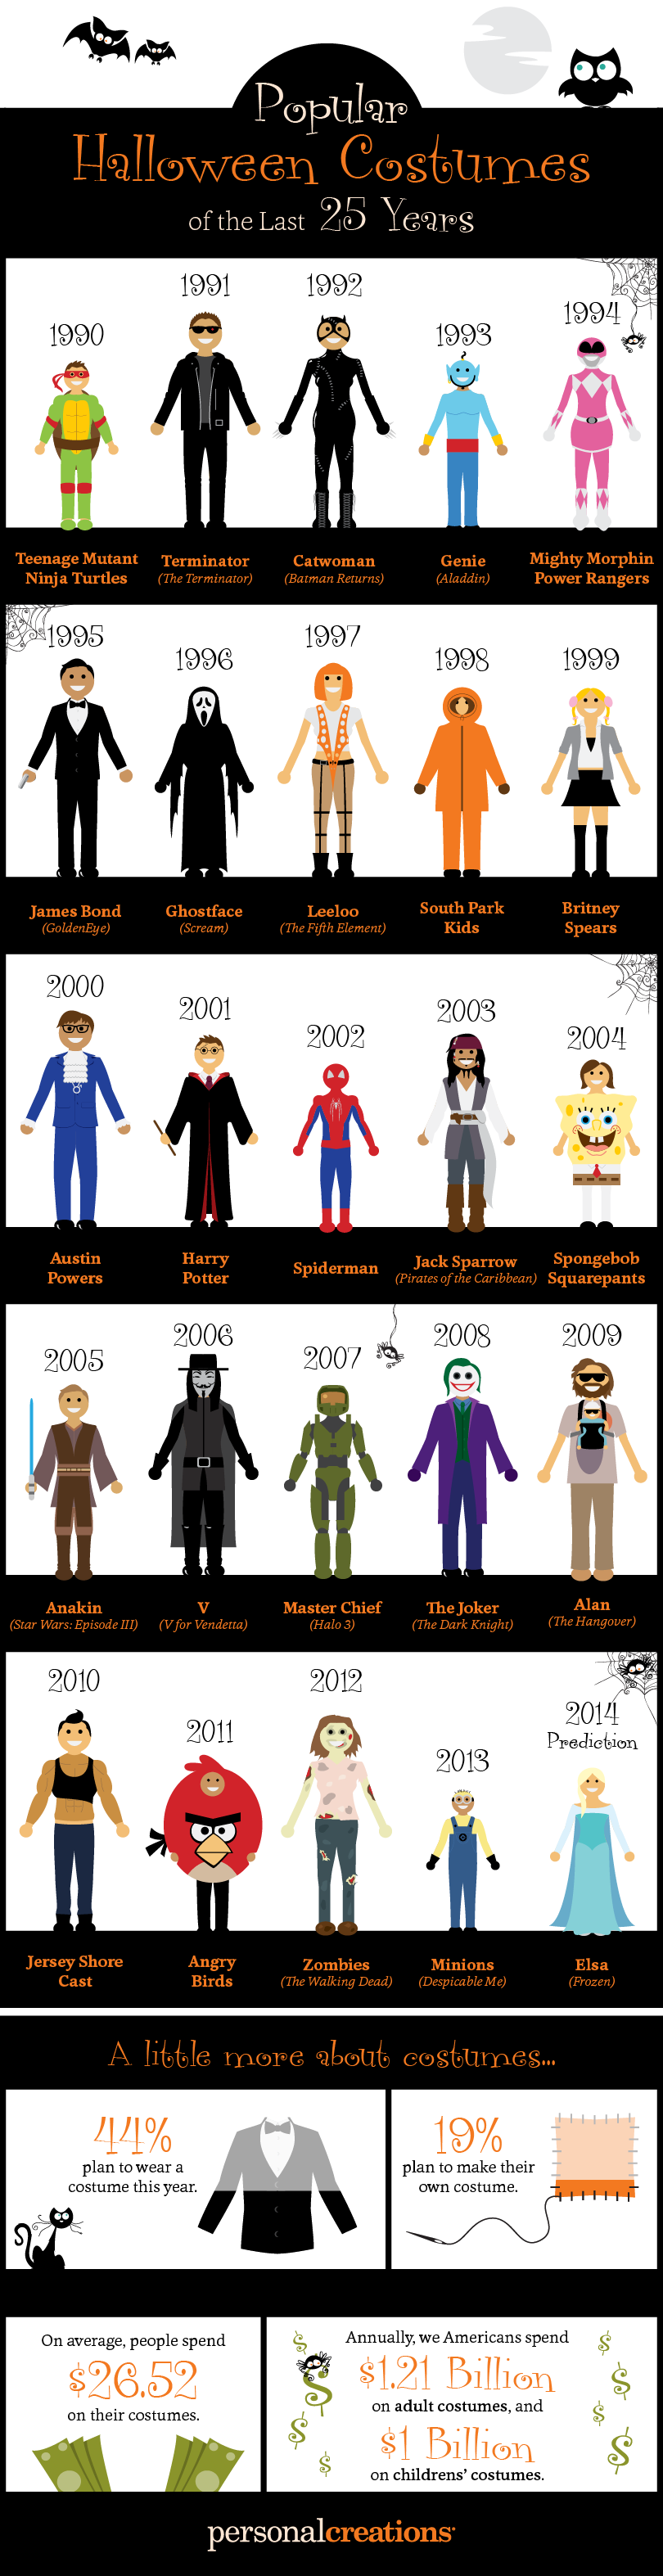 Most Popular Halloween Costumes of the Last 25 Years - Infographic ...